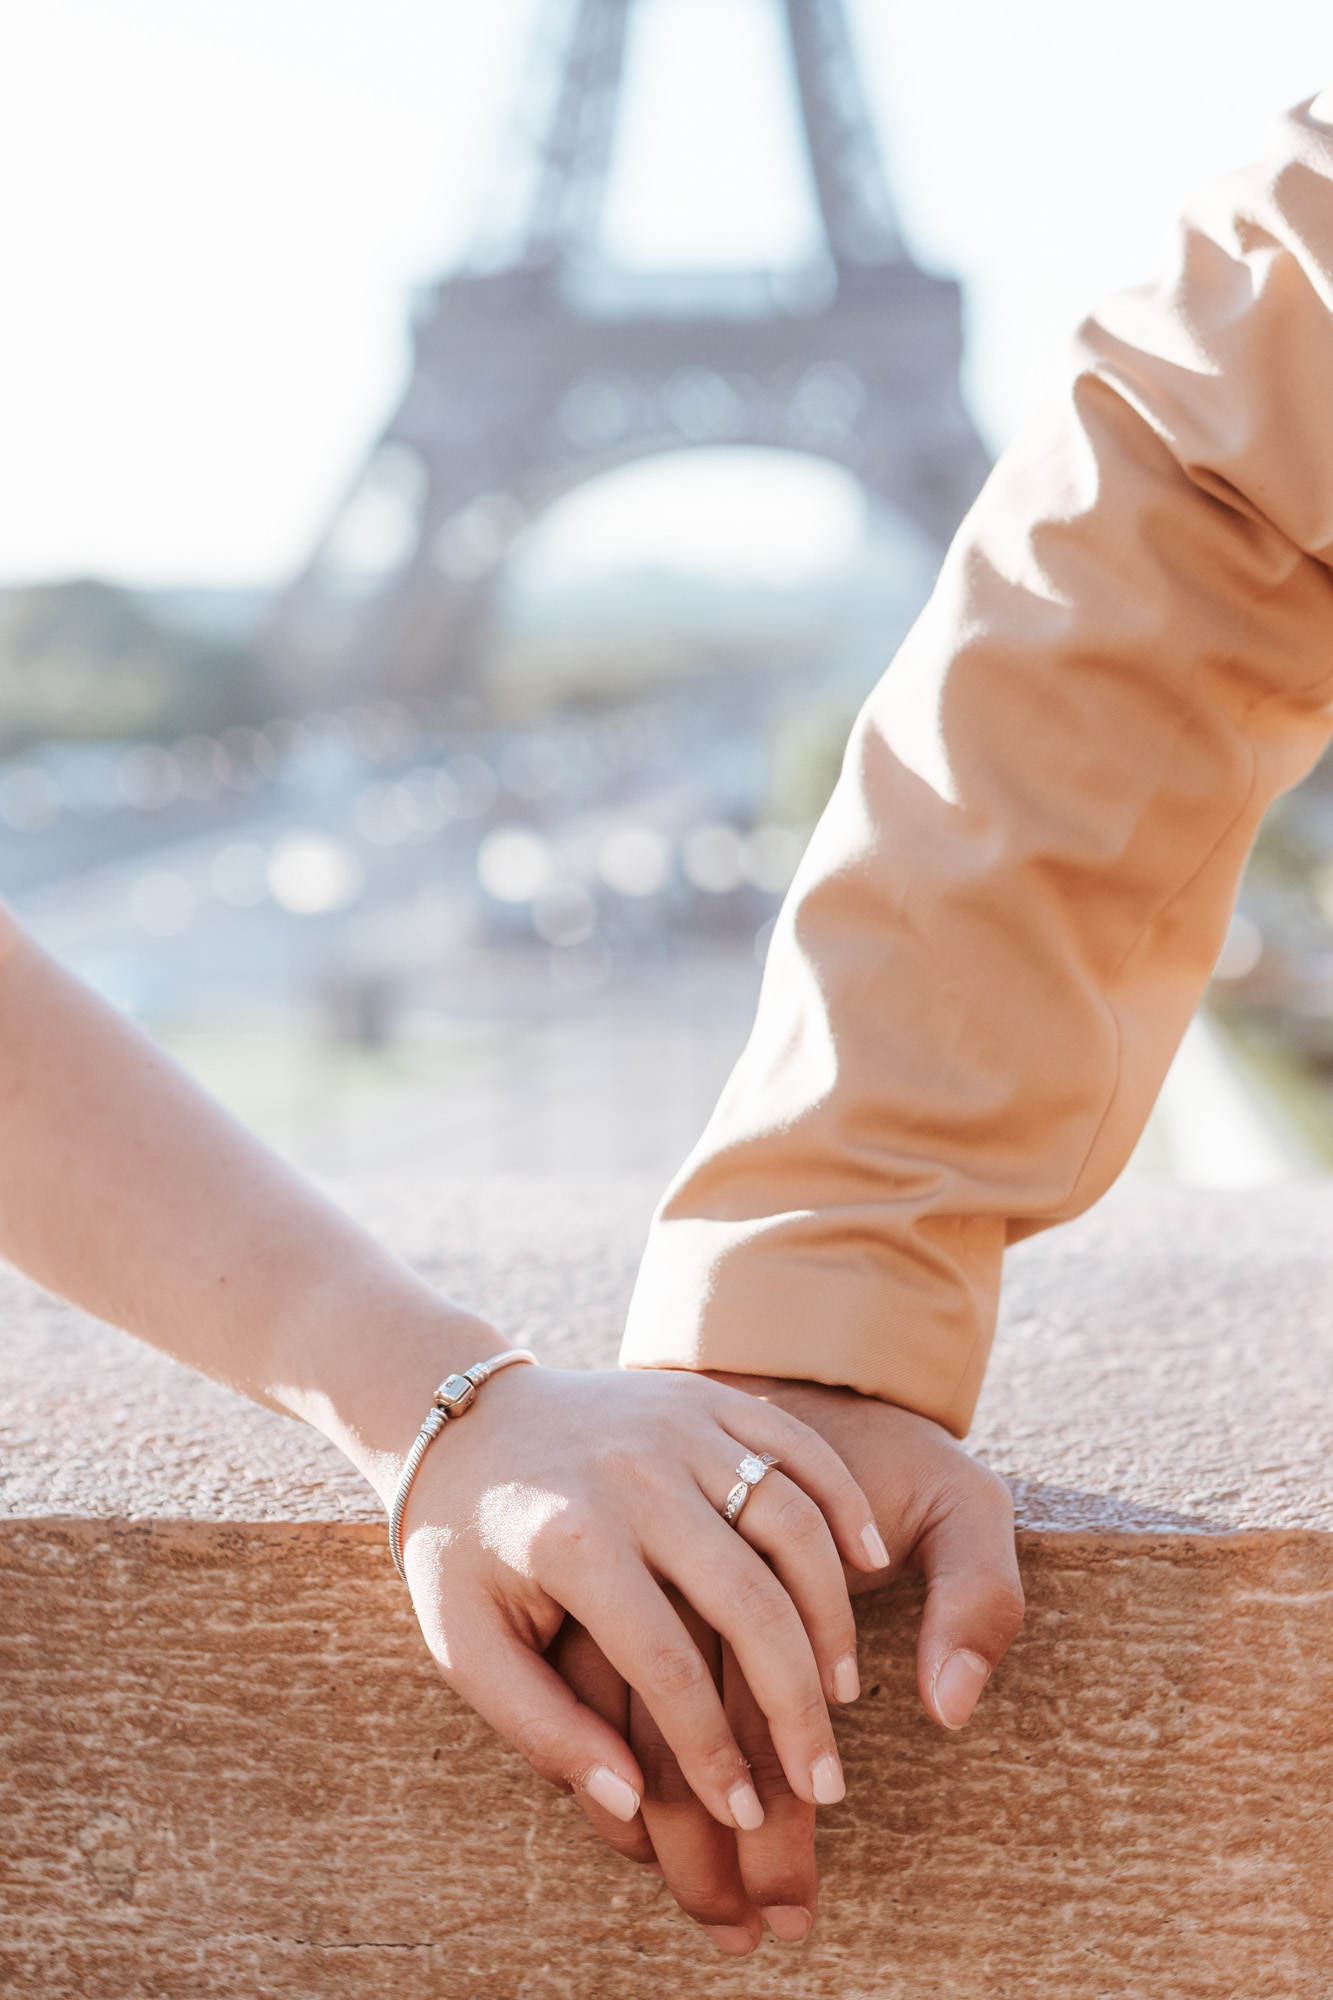 Pre-wedding couple holding hands with engagement ring by the Eiffel Tower in sunrise captured by Photographer in Paris Federico Guendel